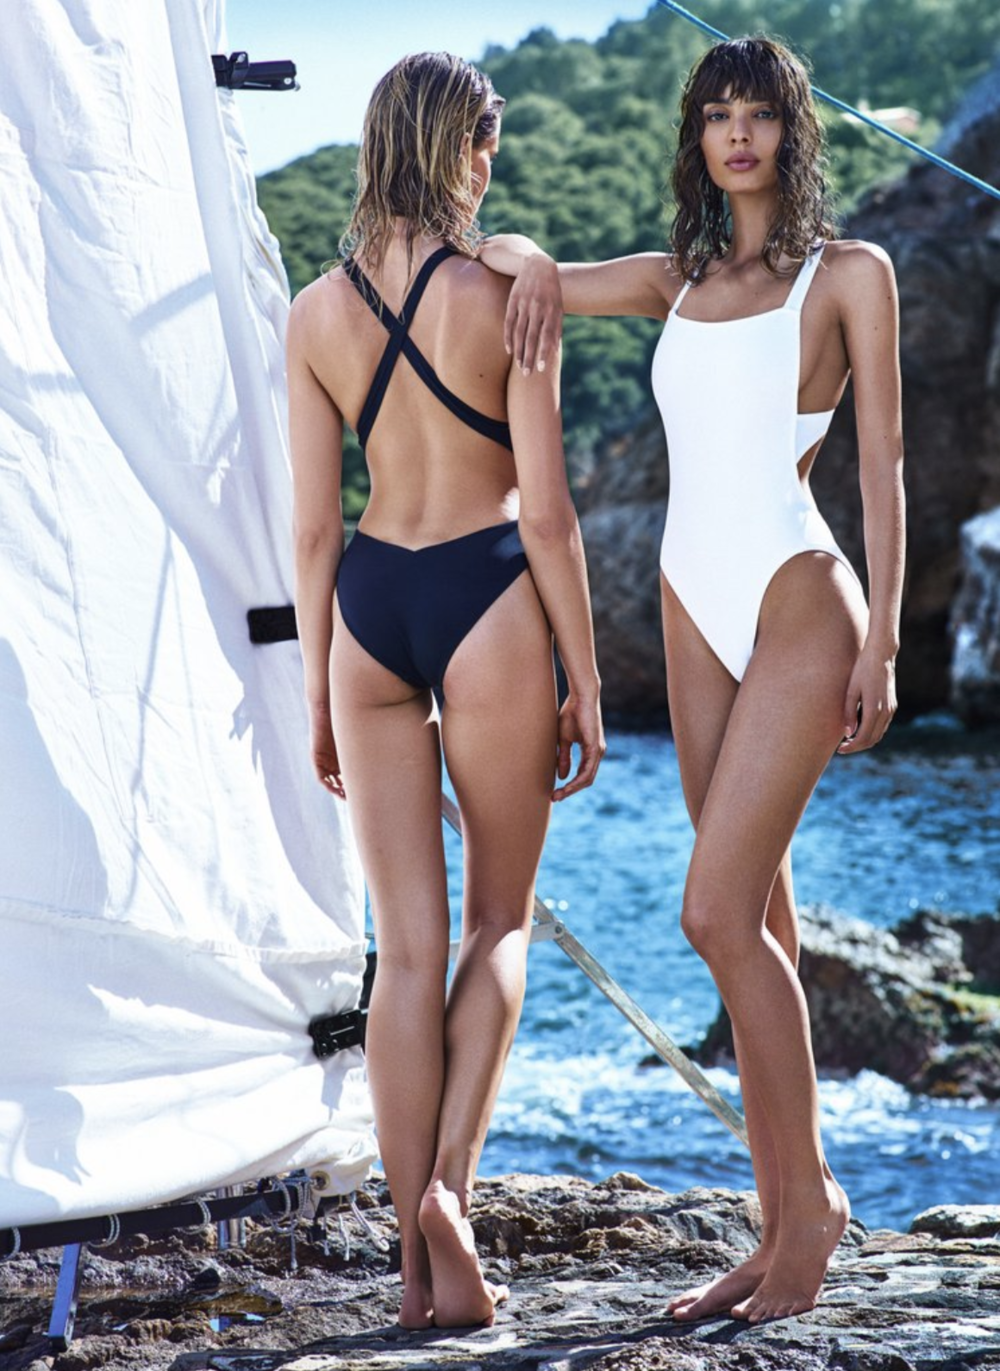 Eco Swimwear Brands All Sisters | Guide by Conscious Fashion Collective